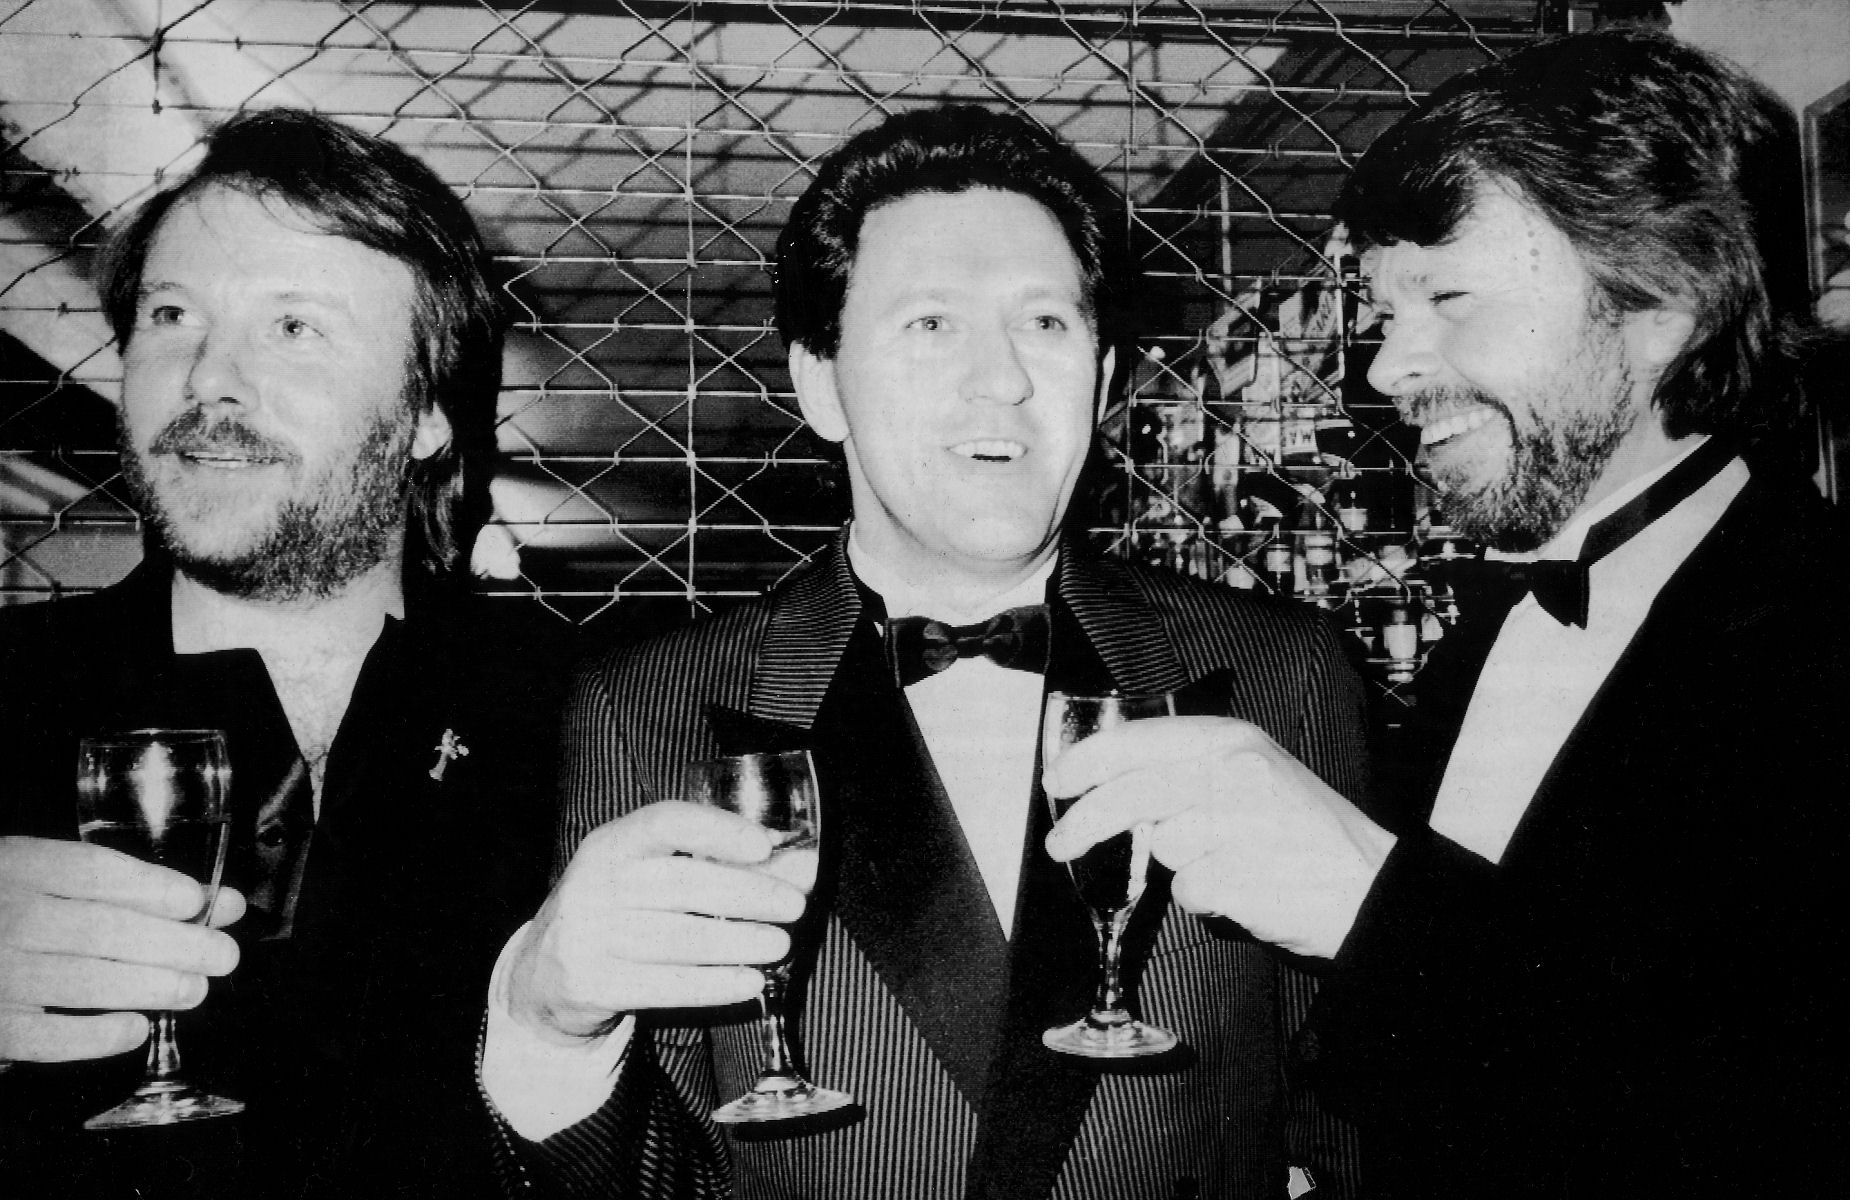 benny_bjorn_tommy_korberg_london_chess_premiere_1986